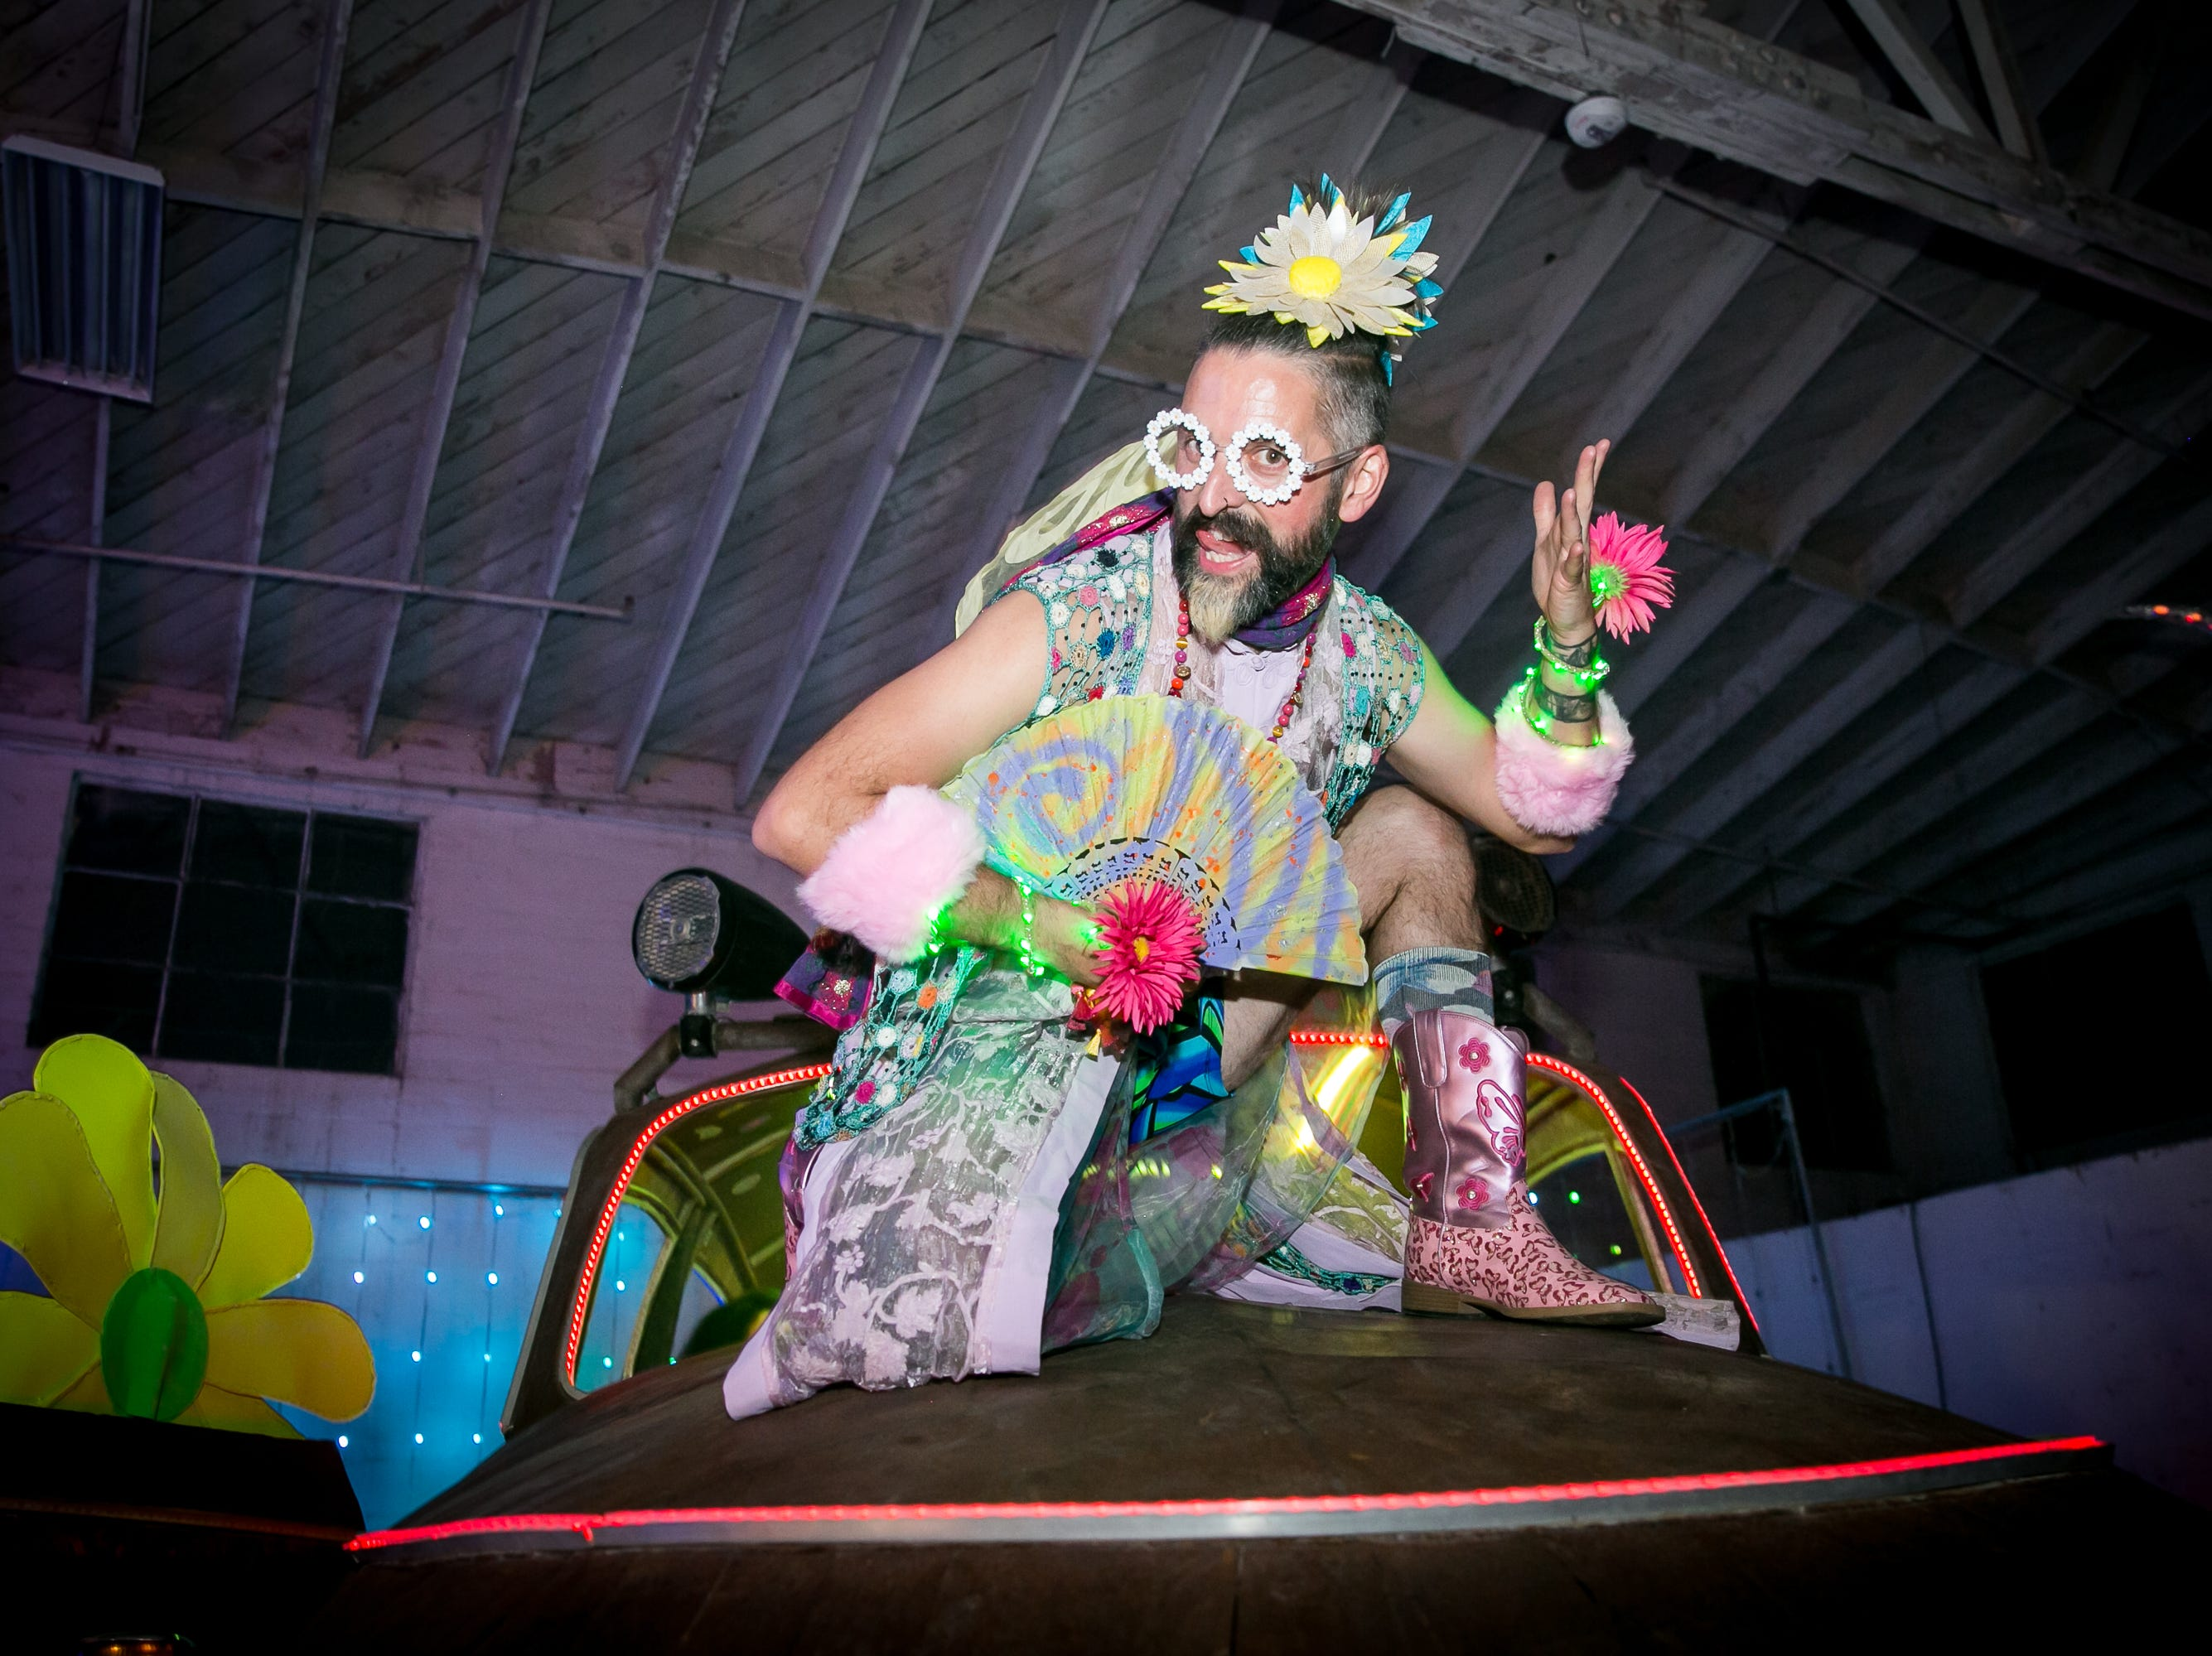 Attendee strikes a pose during Bloom at The Where?House Gallery on March 30, 2019.